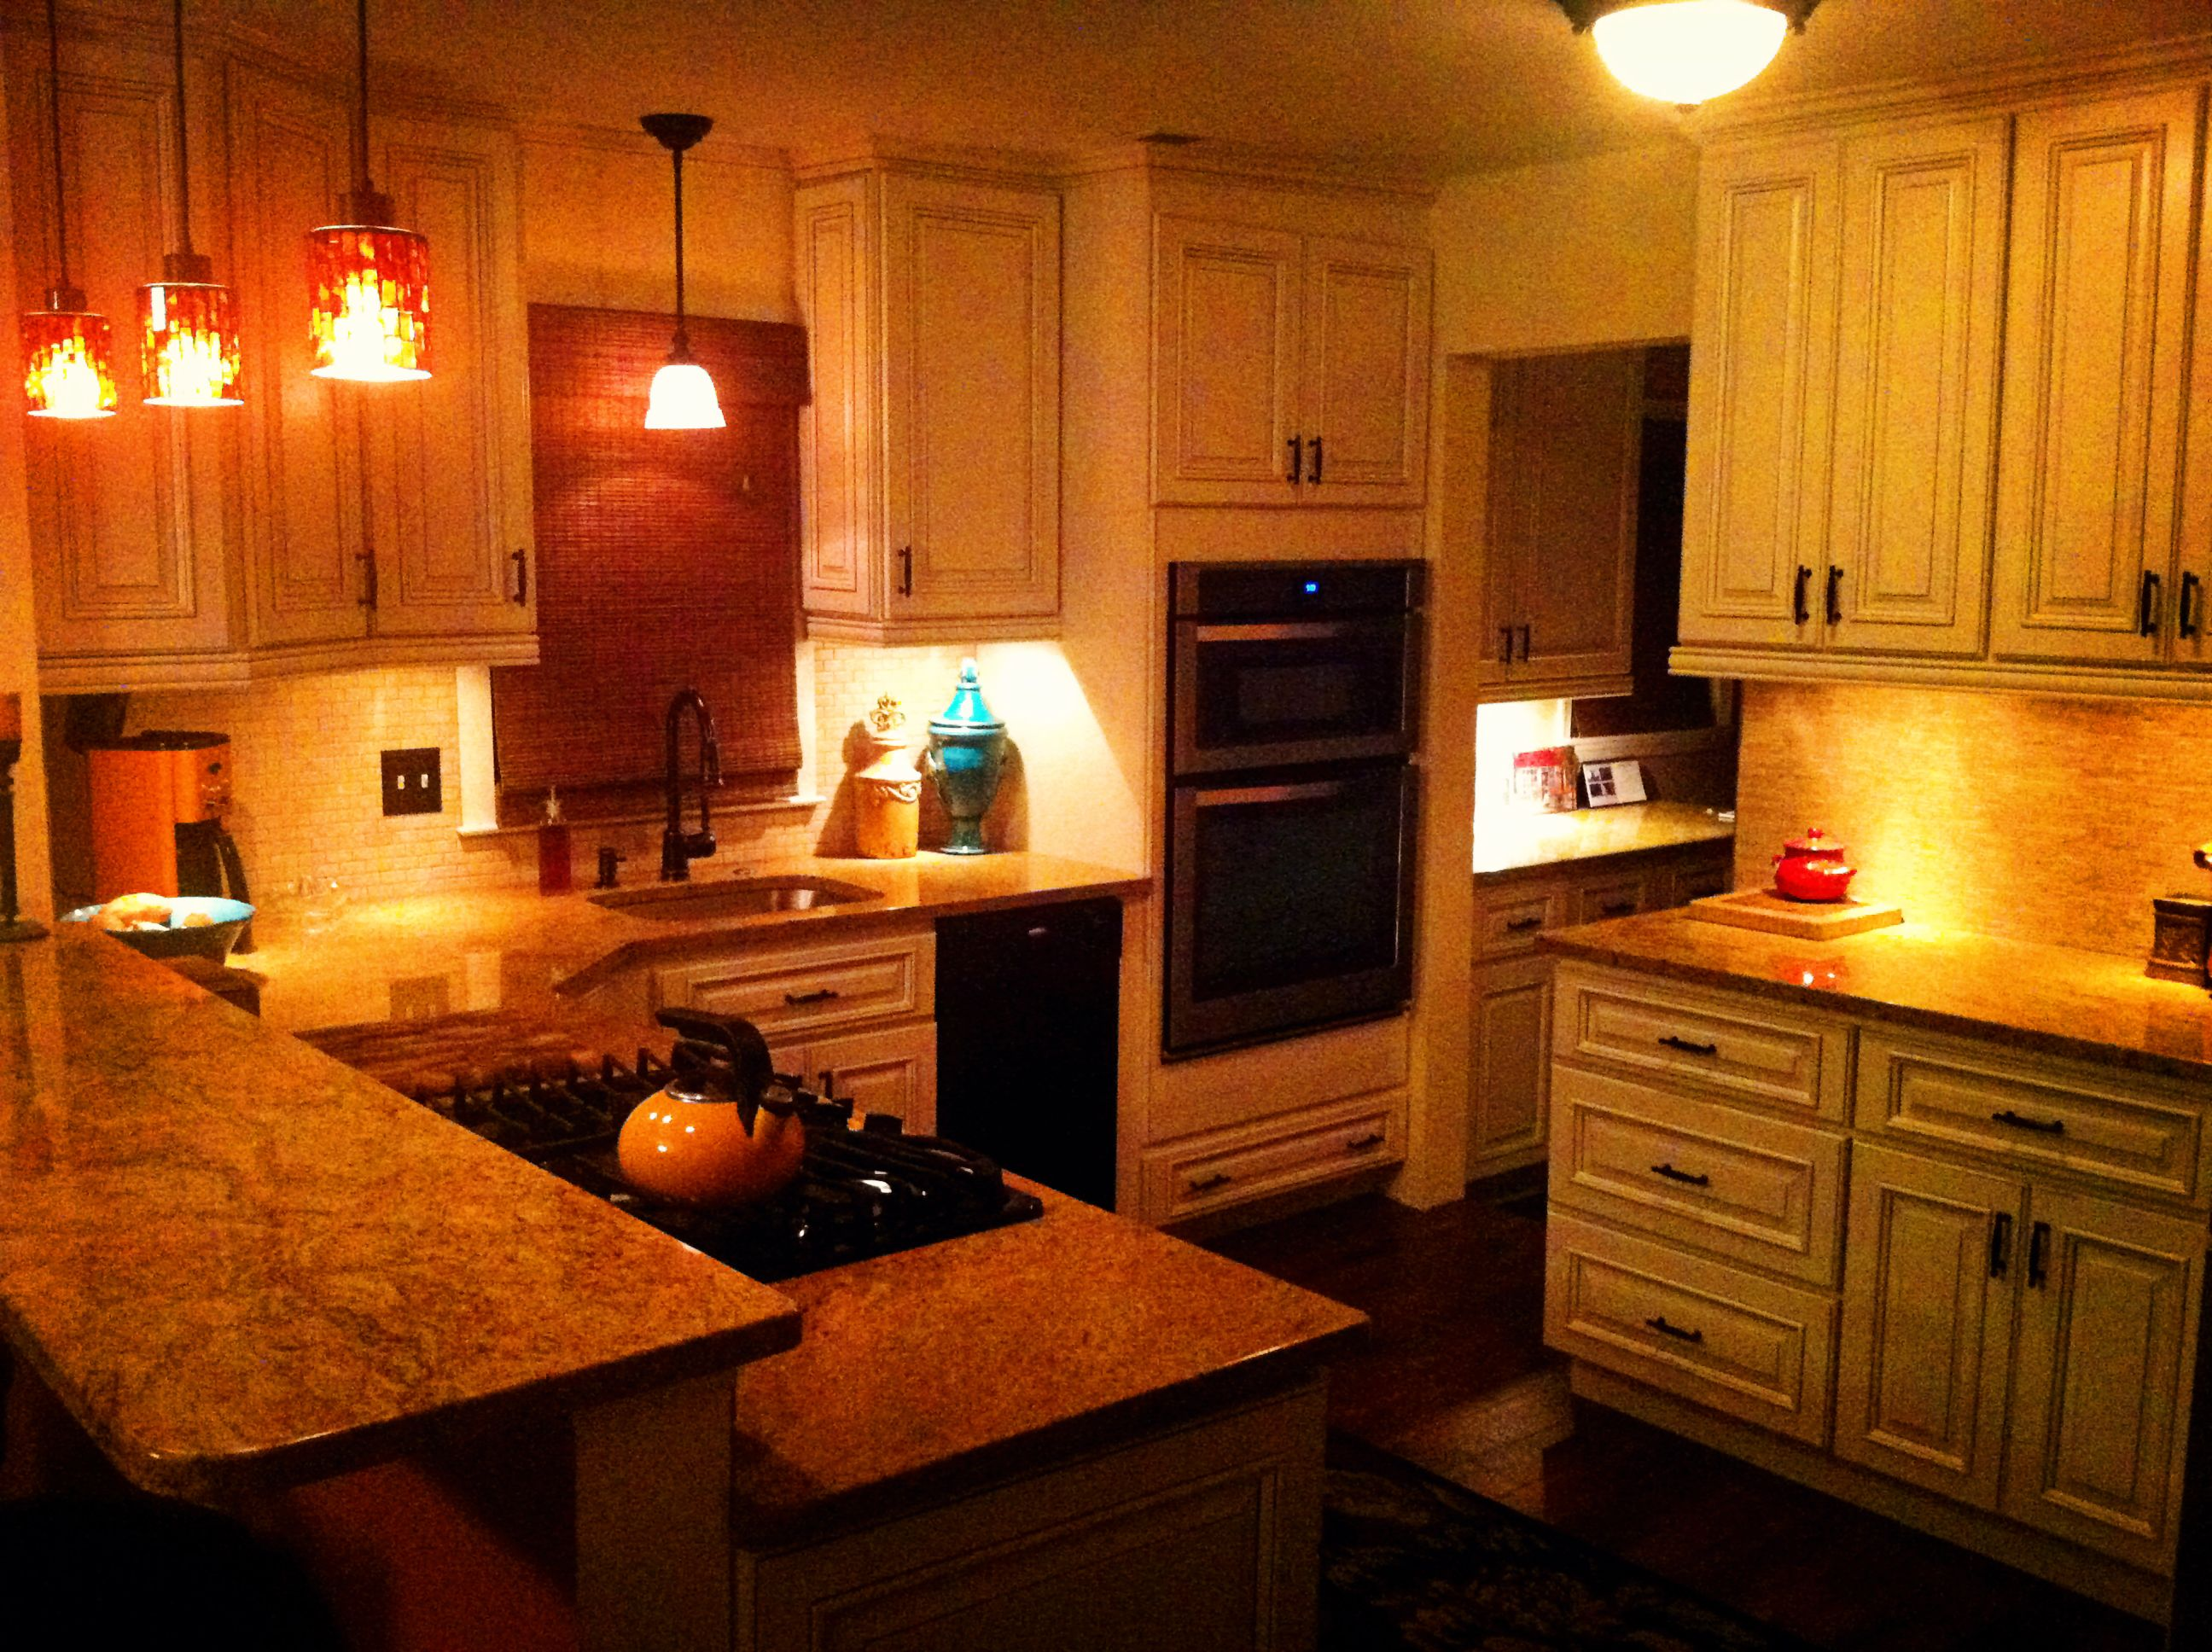 this is my kitchen and design river run cabinets in hampton glaze this is my kitchen and design river run cabinets in hampton glaze granite bar